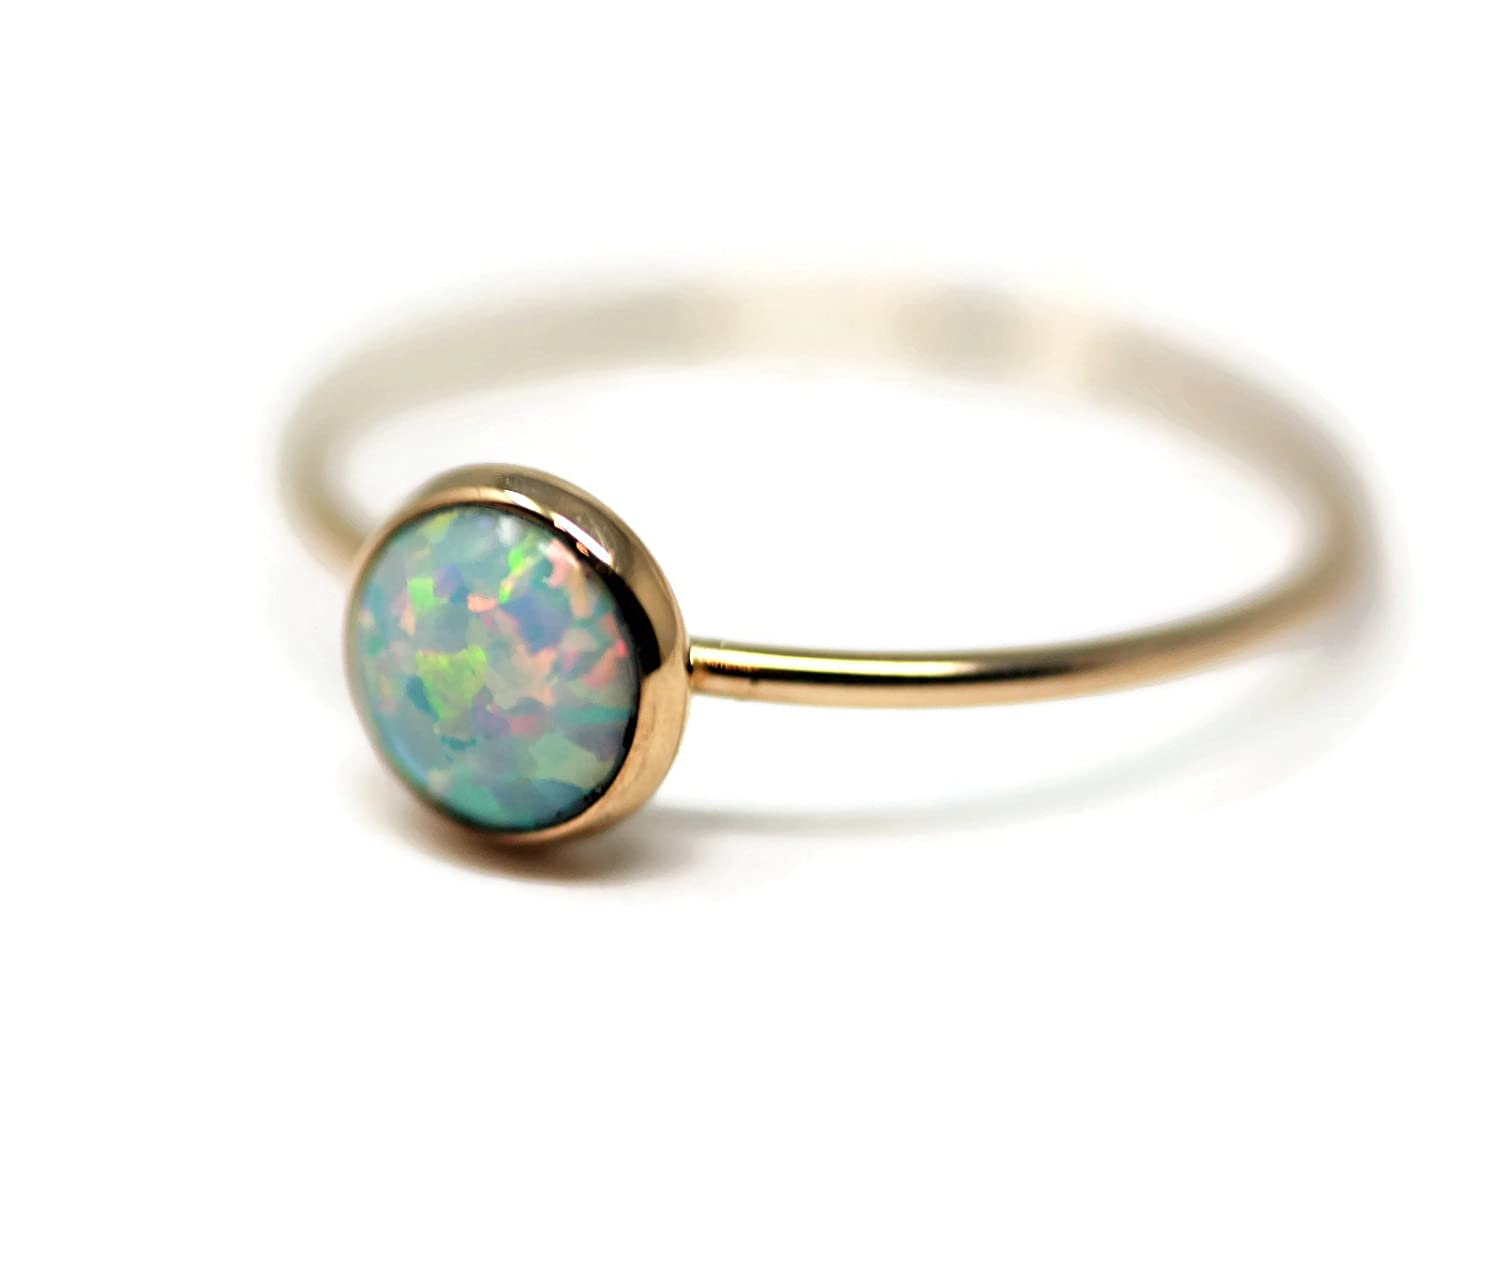 Round 6 mm Created Opal and 14K Gold Filled Skinny Ring Size 5,6,7,8